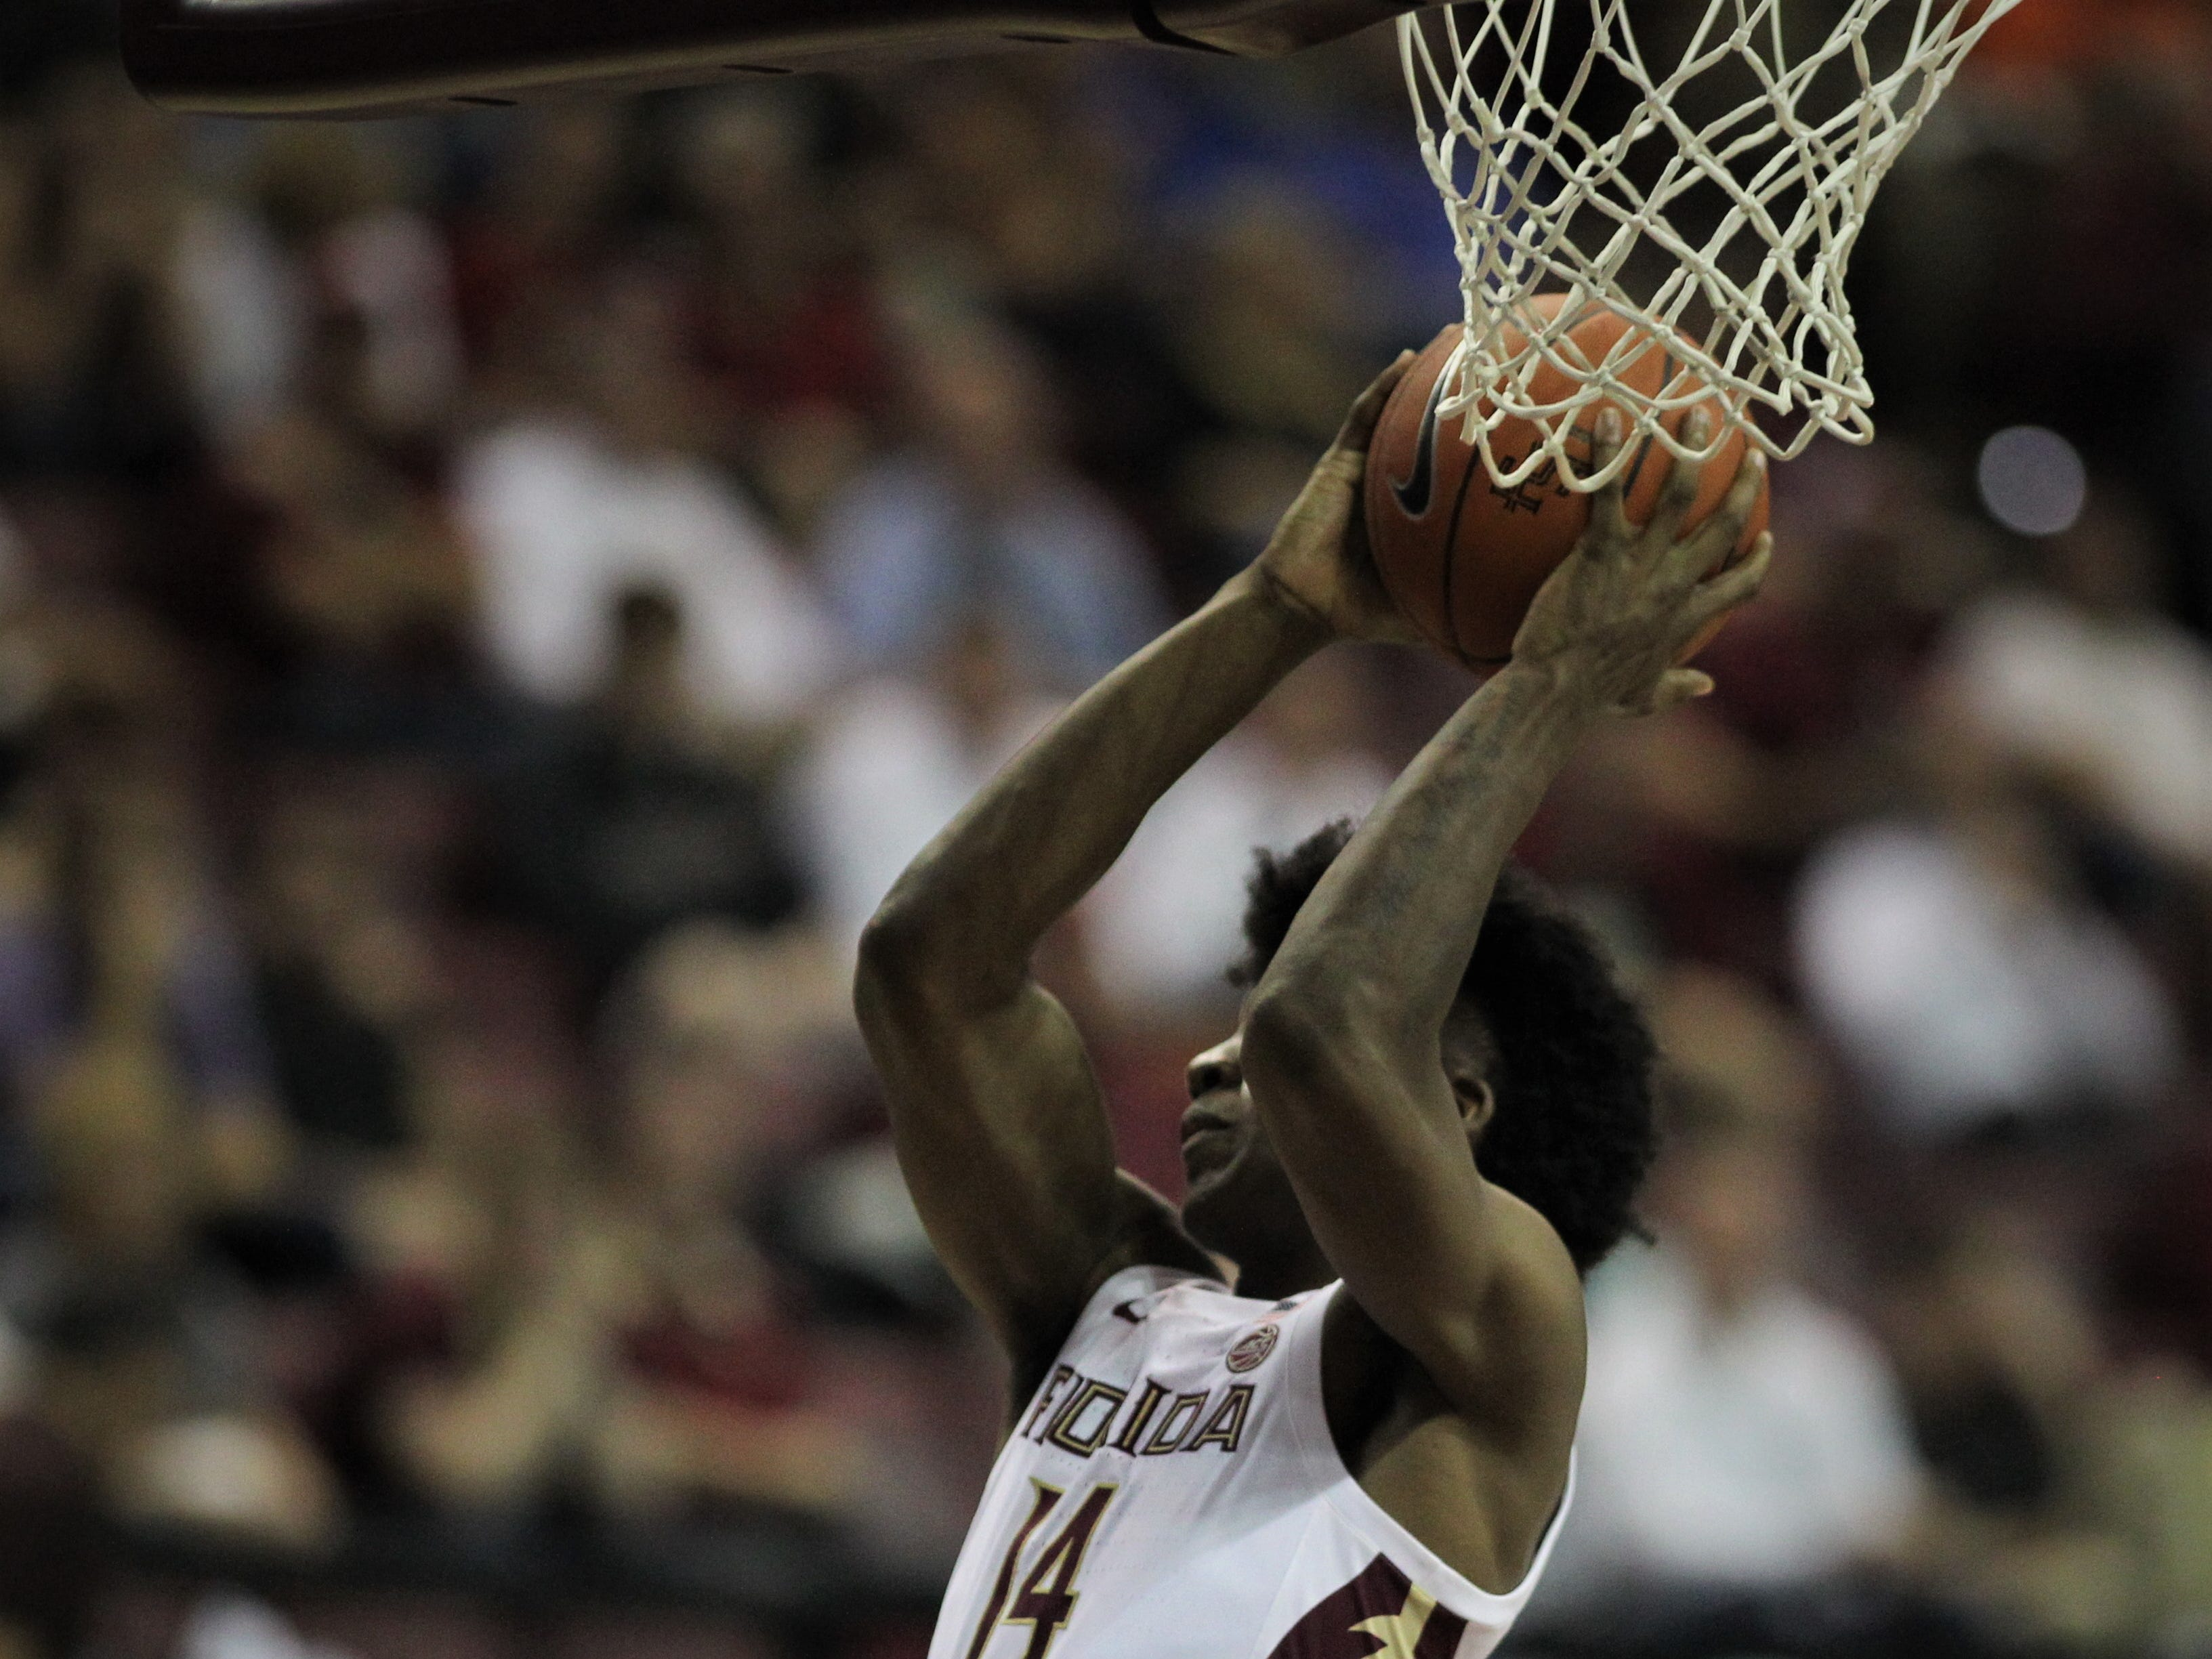 Florida State's Terance Mann grabs a rebounds against Florida during the Sunshine Showdown game Tuesday at the Tucker Civic Center.